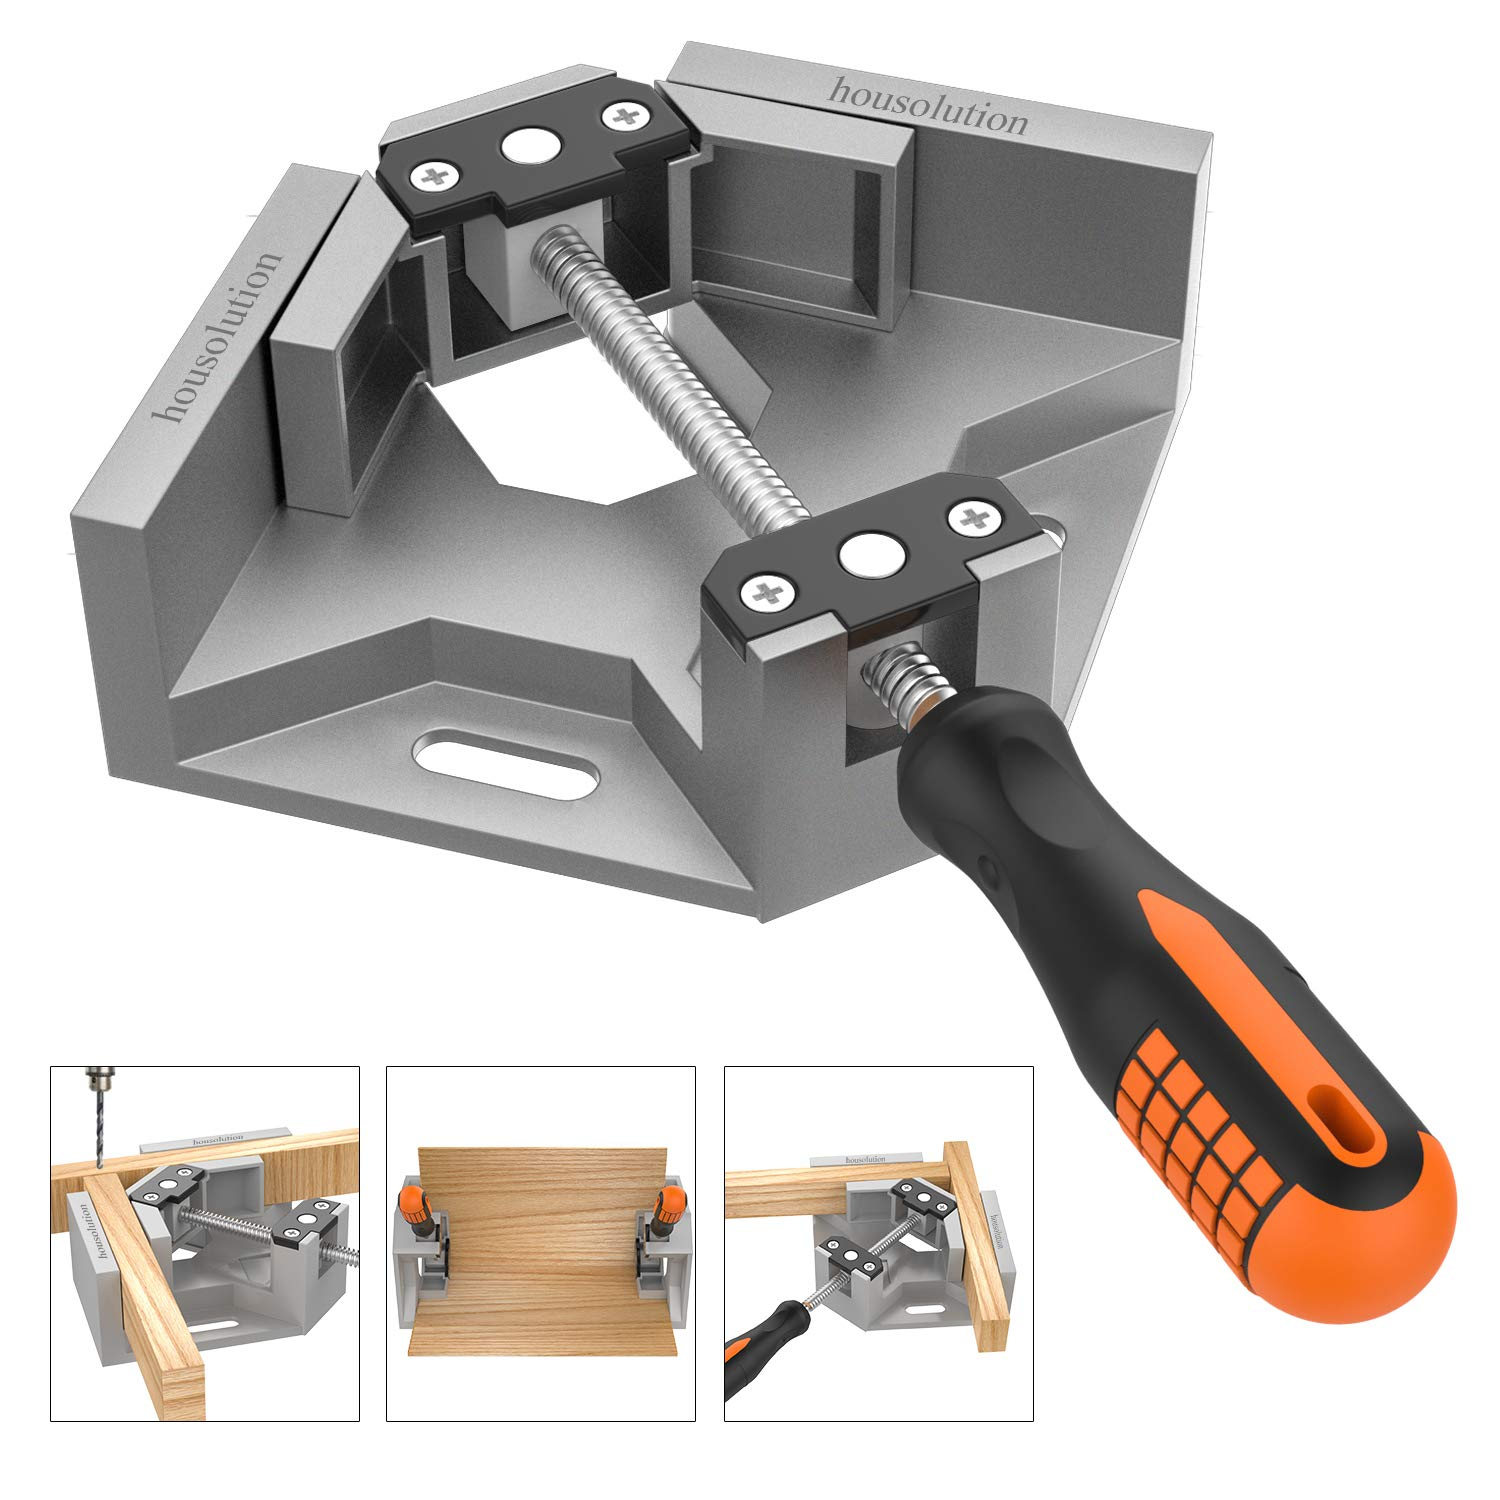 Right Angle Clamp, Housolution Single Handle 90° Aluminum Alloy Corner Clamp, Right Angle Clip Clamp Tool Woodworking Photo Frame Vise Holder with Adjustable Swing Jaw - Black Housolution Single Handle 90° Aluminum Alloy Corner Clamp